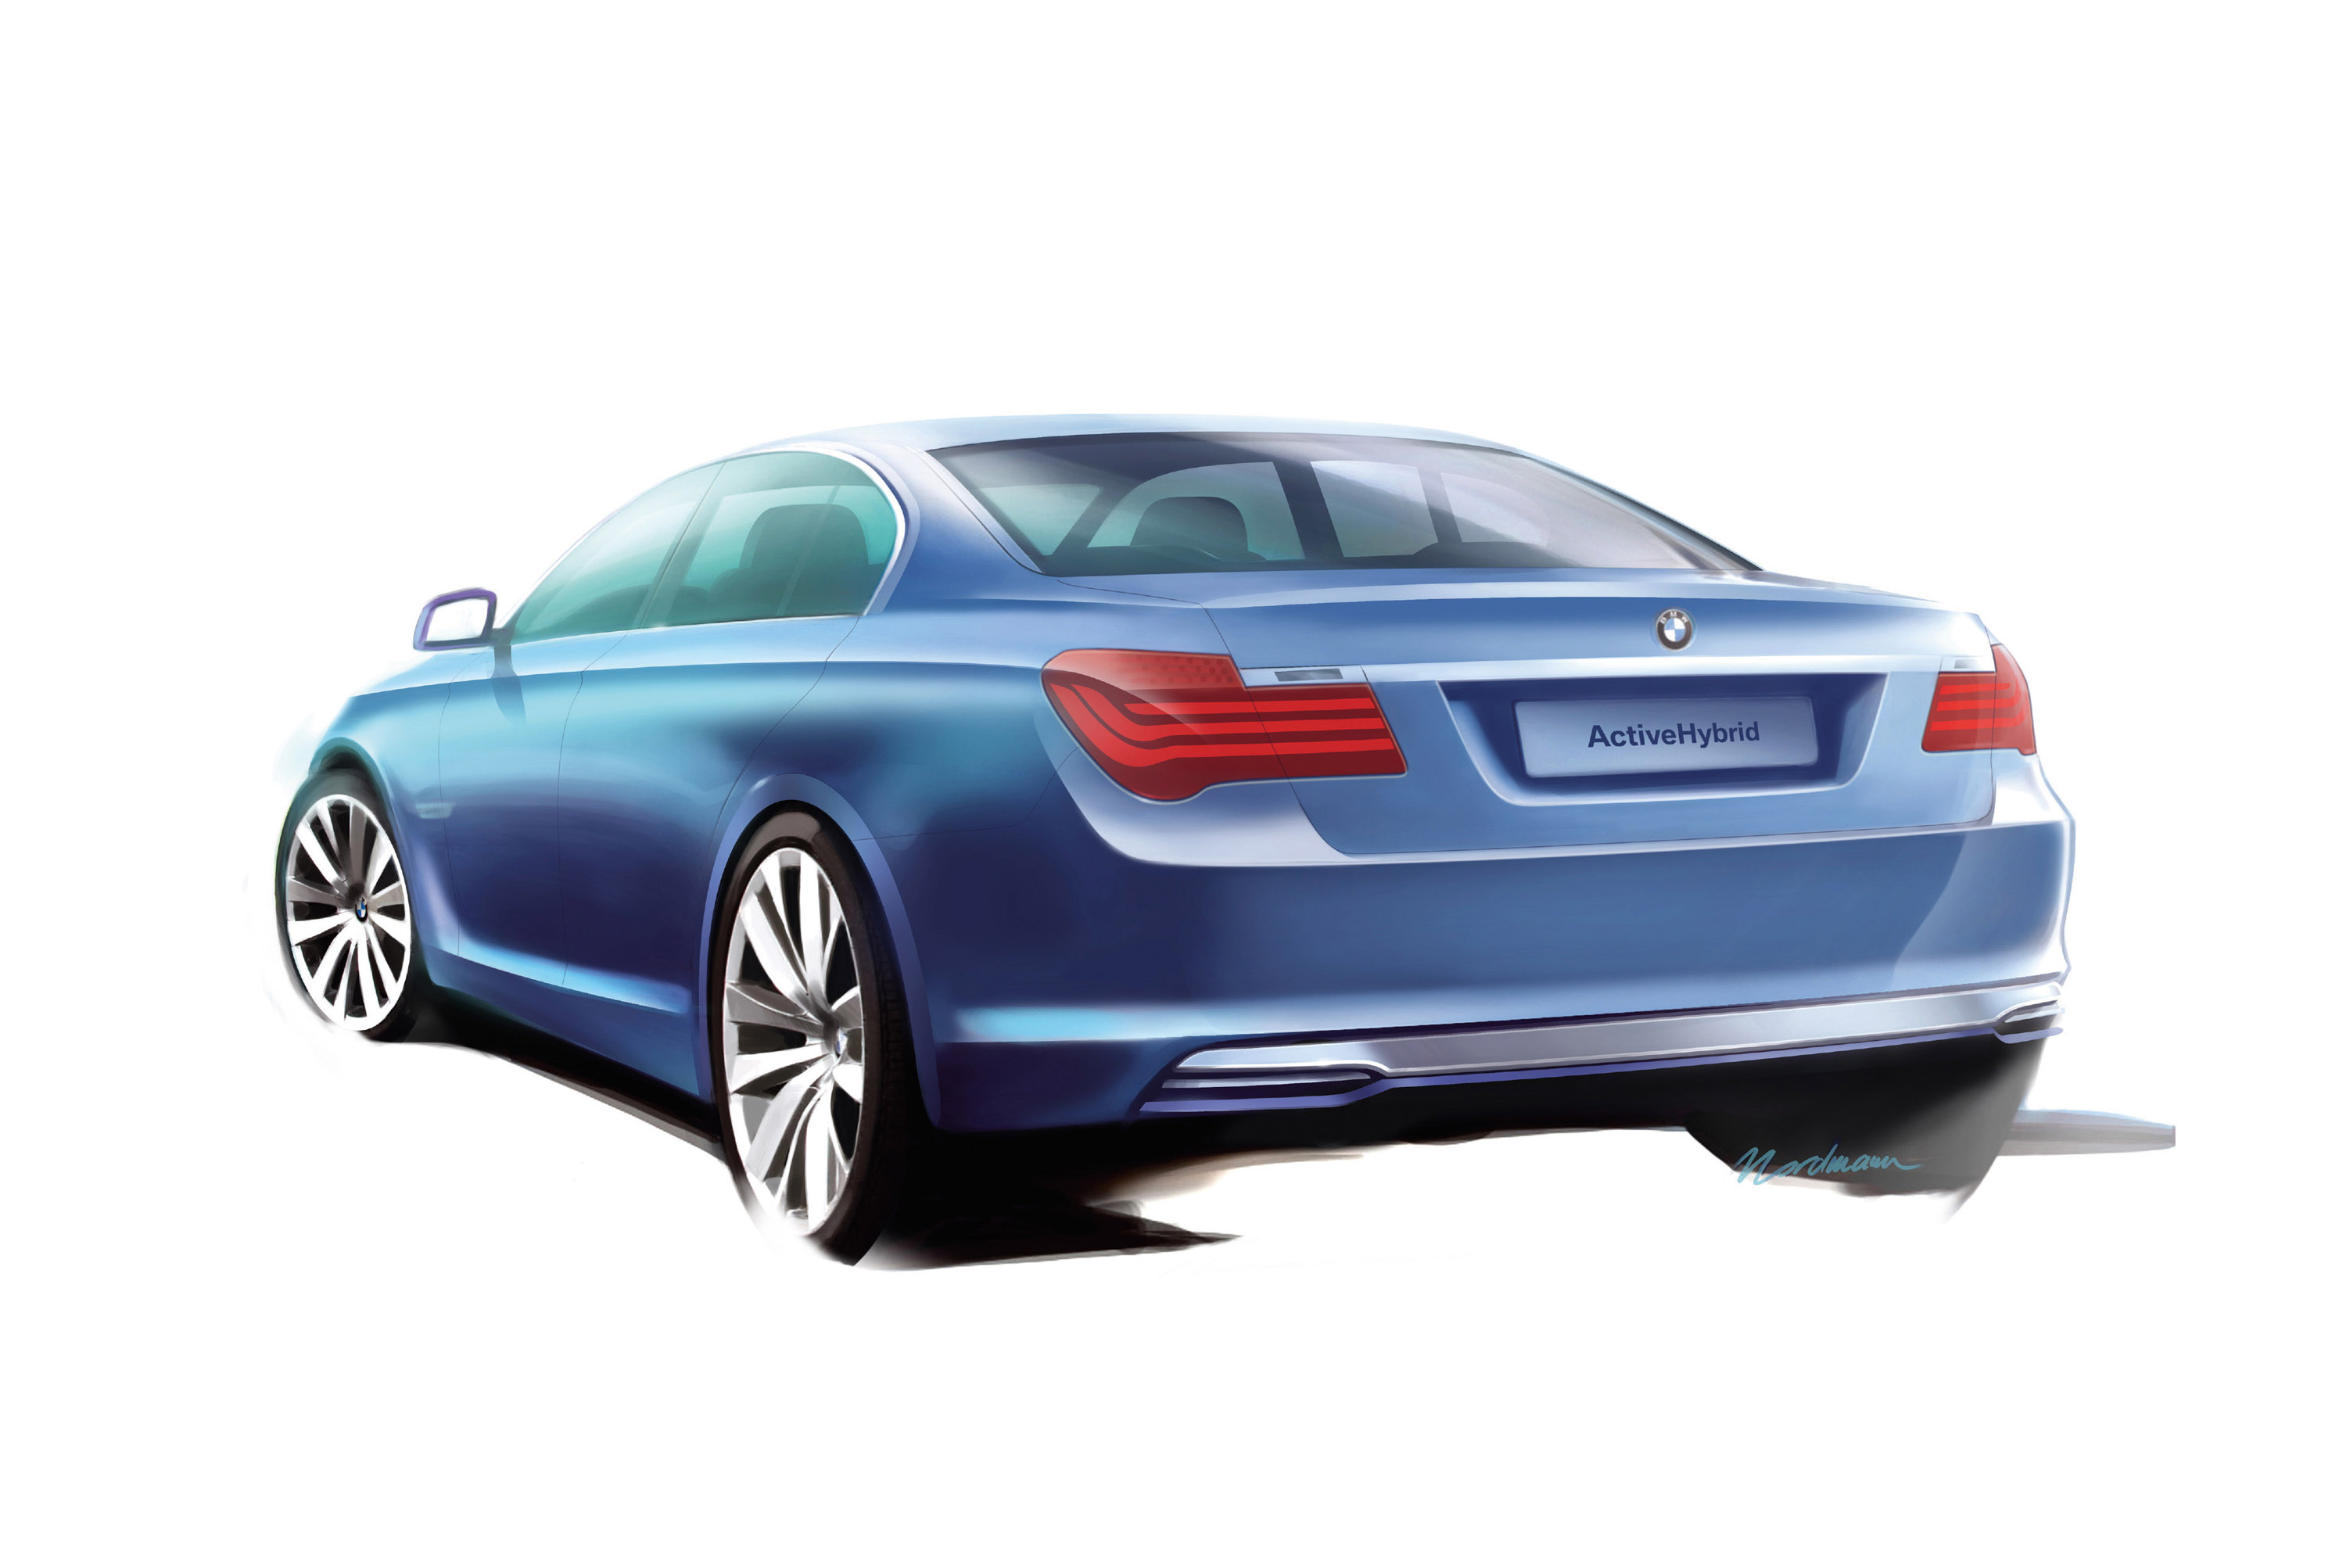 Remarkable BMW Concept 7 Series ActiveHybrid, 1 of 13 3000 x 2005 · 389 kB · jpeg